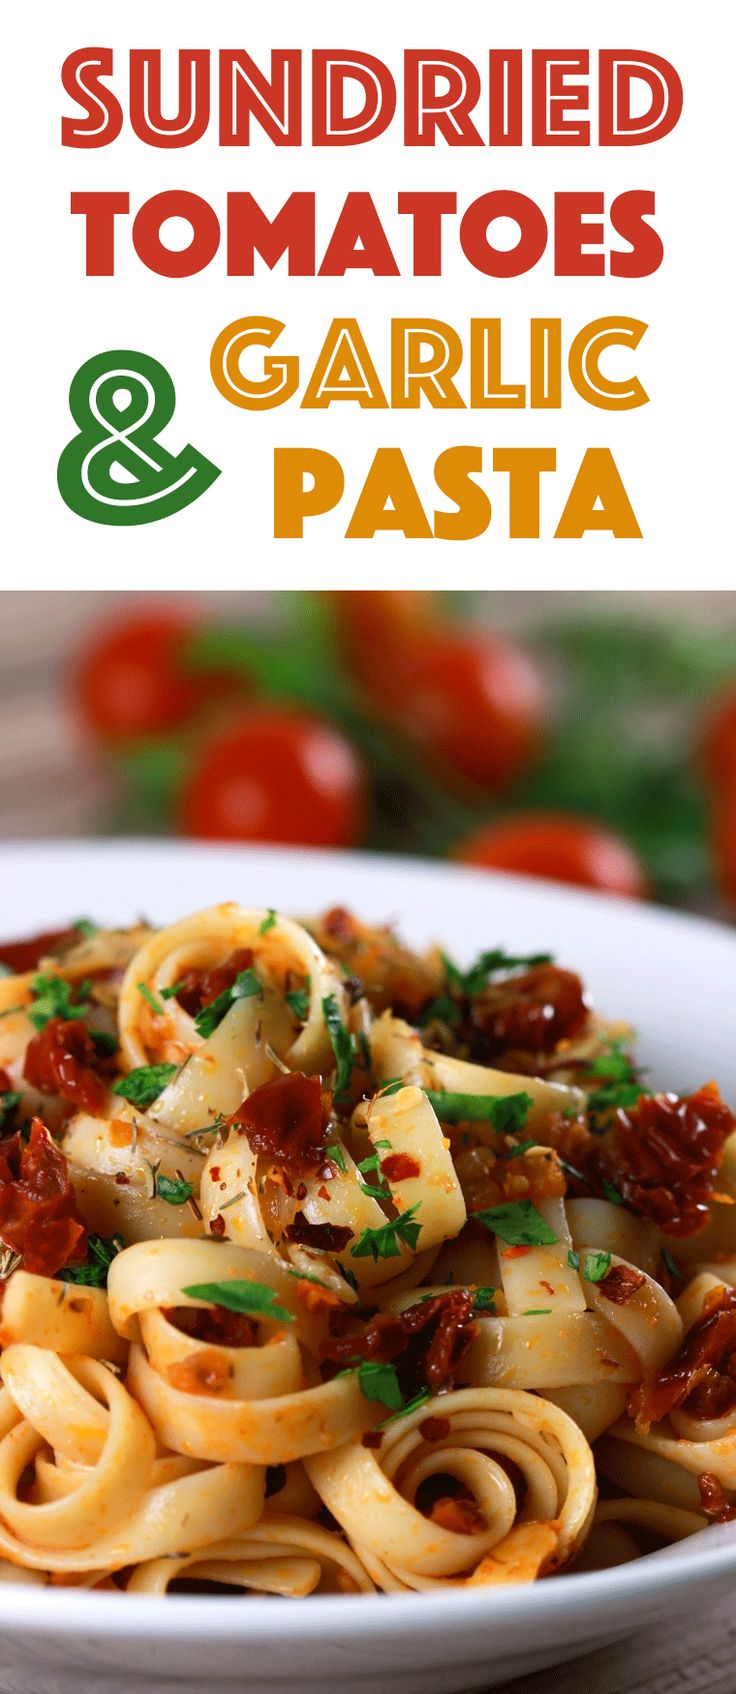 This pasta recipe is PERFECT for mid-week lazy days and tastes spectacular!! And learn how to make delicious sundried tomatoes yourself while you're at it! YUM!!   ScrambledChefs.com